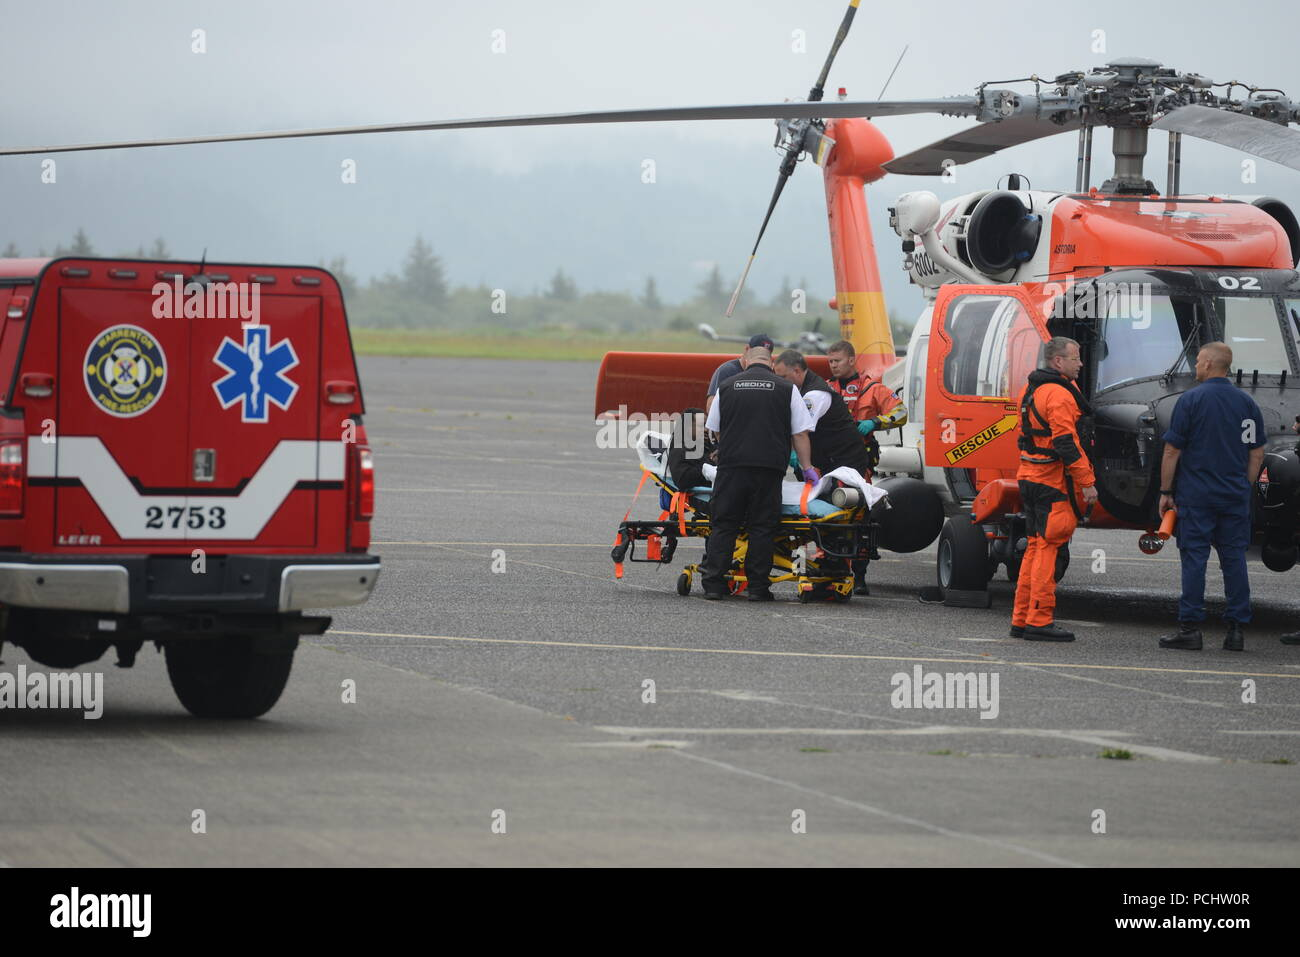 Paramedics from MEDIX ambulance and Warrenton Fire and Rescue receive a patient from a Sector Columbia River MH-60 Jayhawk aircrew at the sector's base in Warrenton, Ore., July 31, 2018.    The patient was medically evacuated off of the commercial fishing vessel Zena D 100 miles off the Pacific City, Ore., coast after he experienced trouble breathing and numbness in his extremities.    U.S. Coast Guard photo by Petty Officer 1st Class Levi Read. - Stock Image